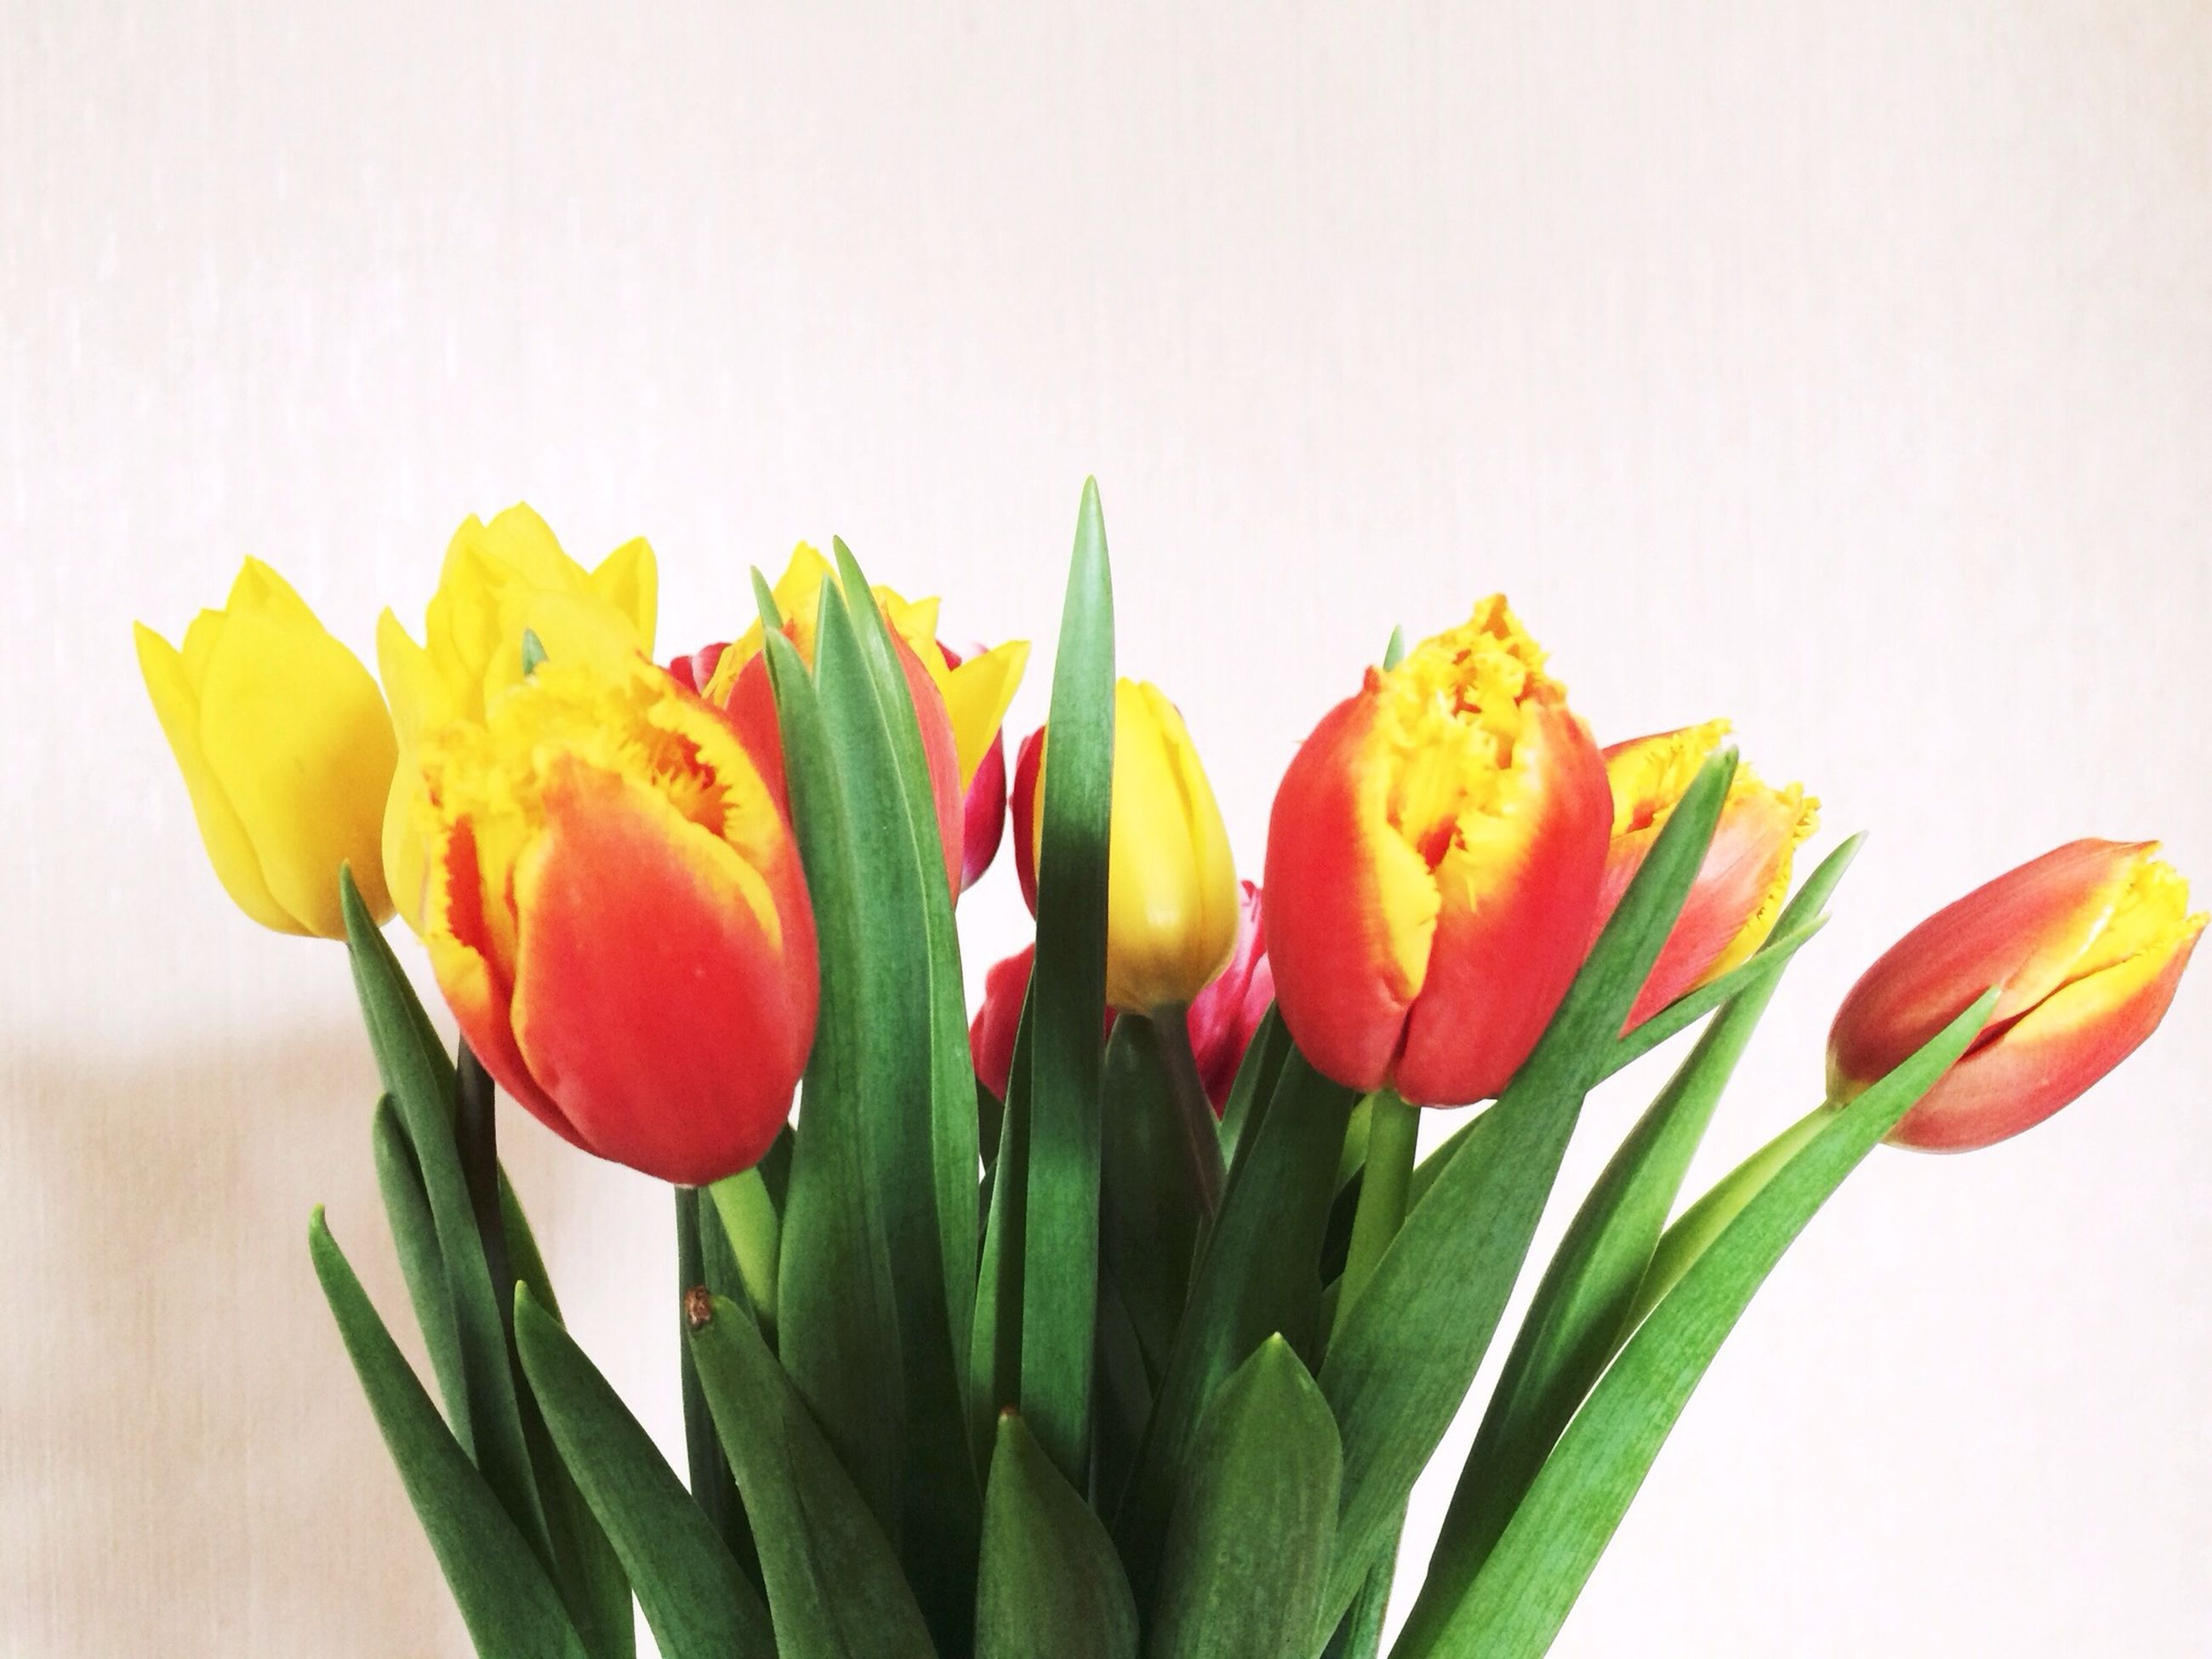 flower, freshness, petal, fragility, flower head, beauty in nature, growth, tulip, leaf, stem, studio shot, close-up, plant, nature, yellow, white background, red, blooming, bud, copy space